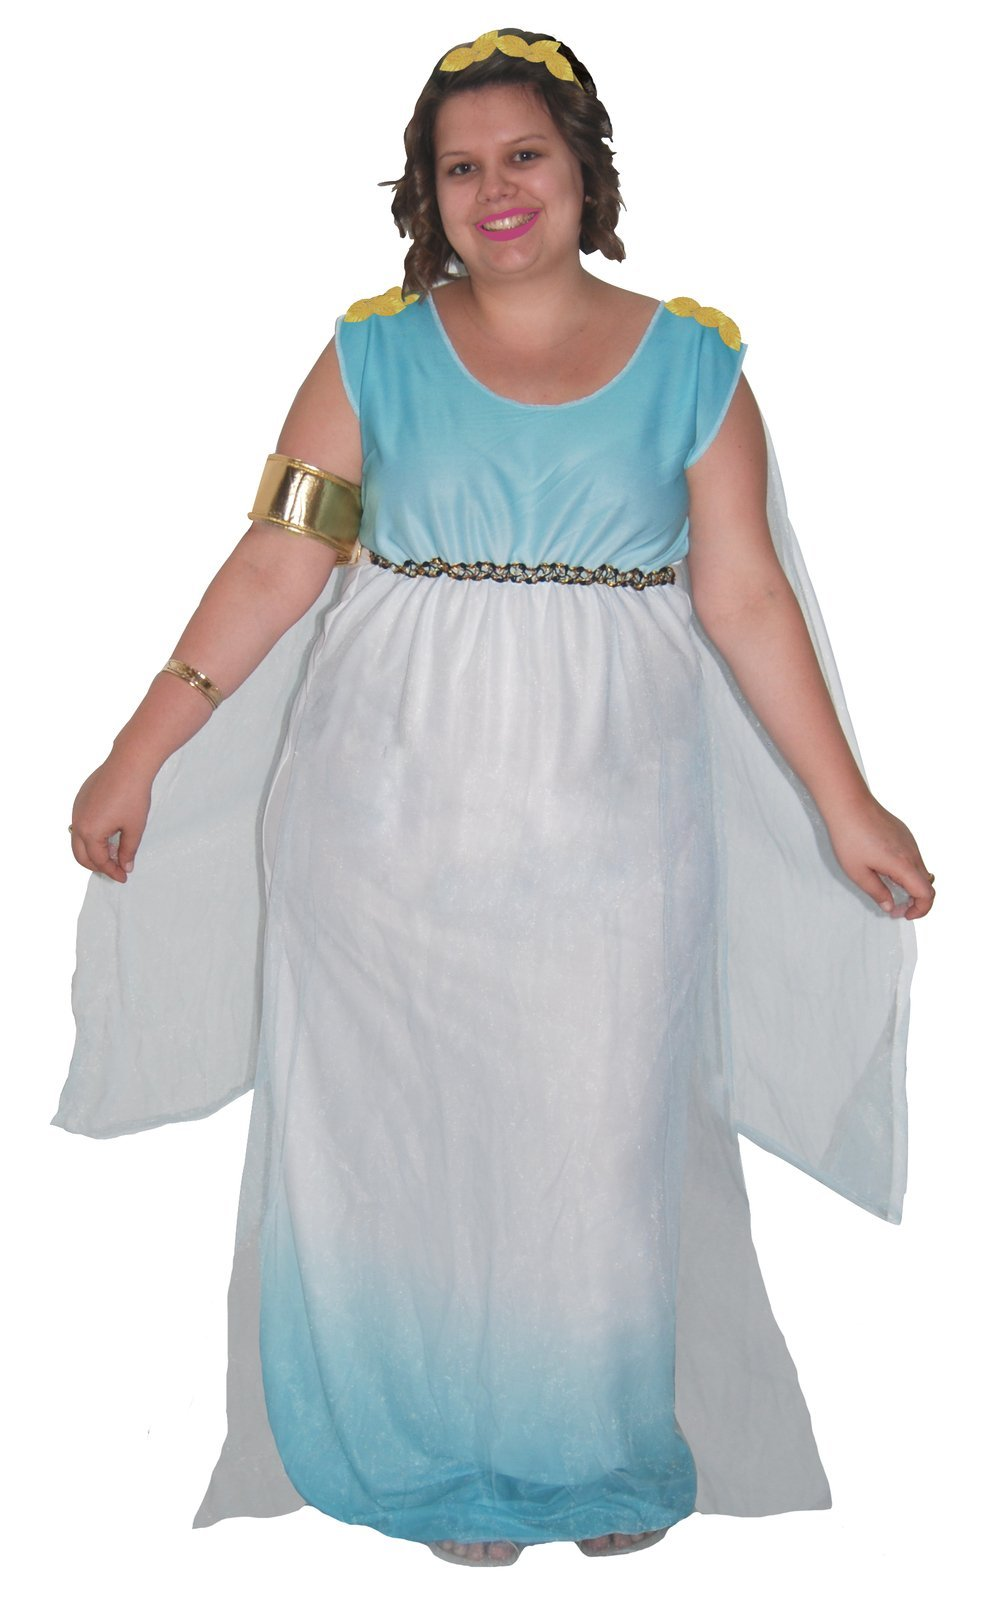 Throne Goddess Plus Size - The Costume Company | Fancy Dress Costumes Hire and Purchase Brisbane and Australia